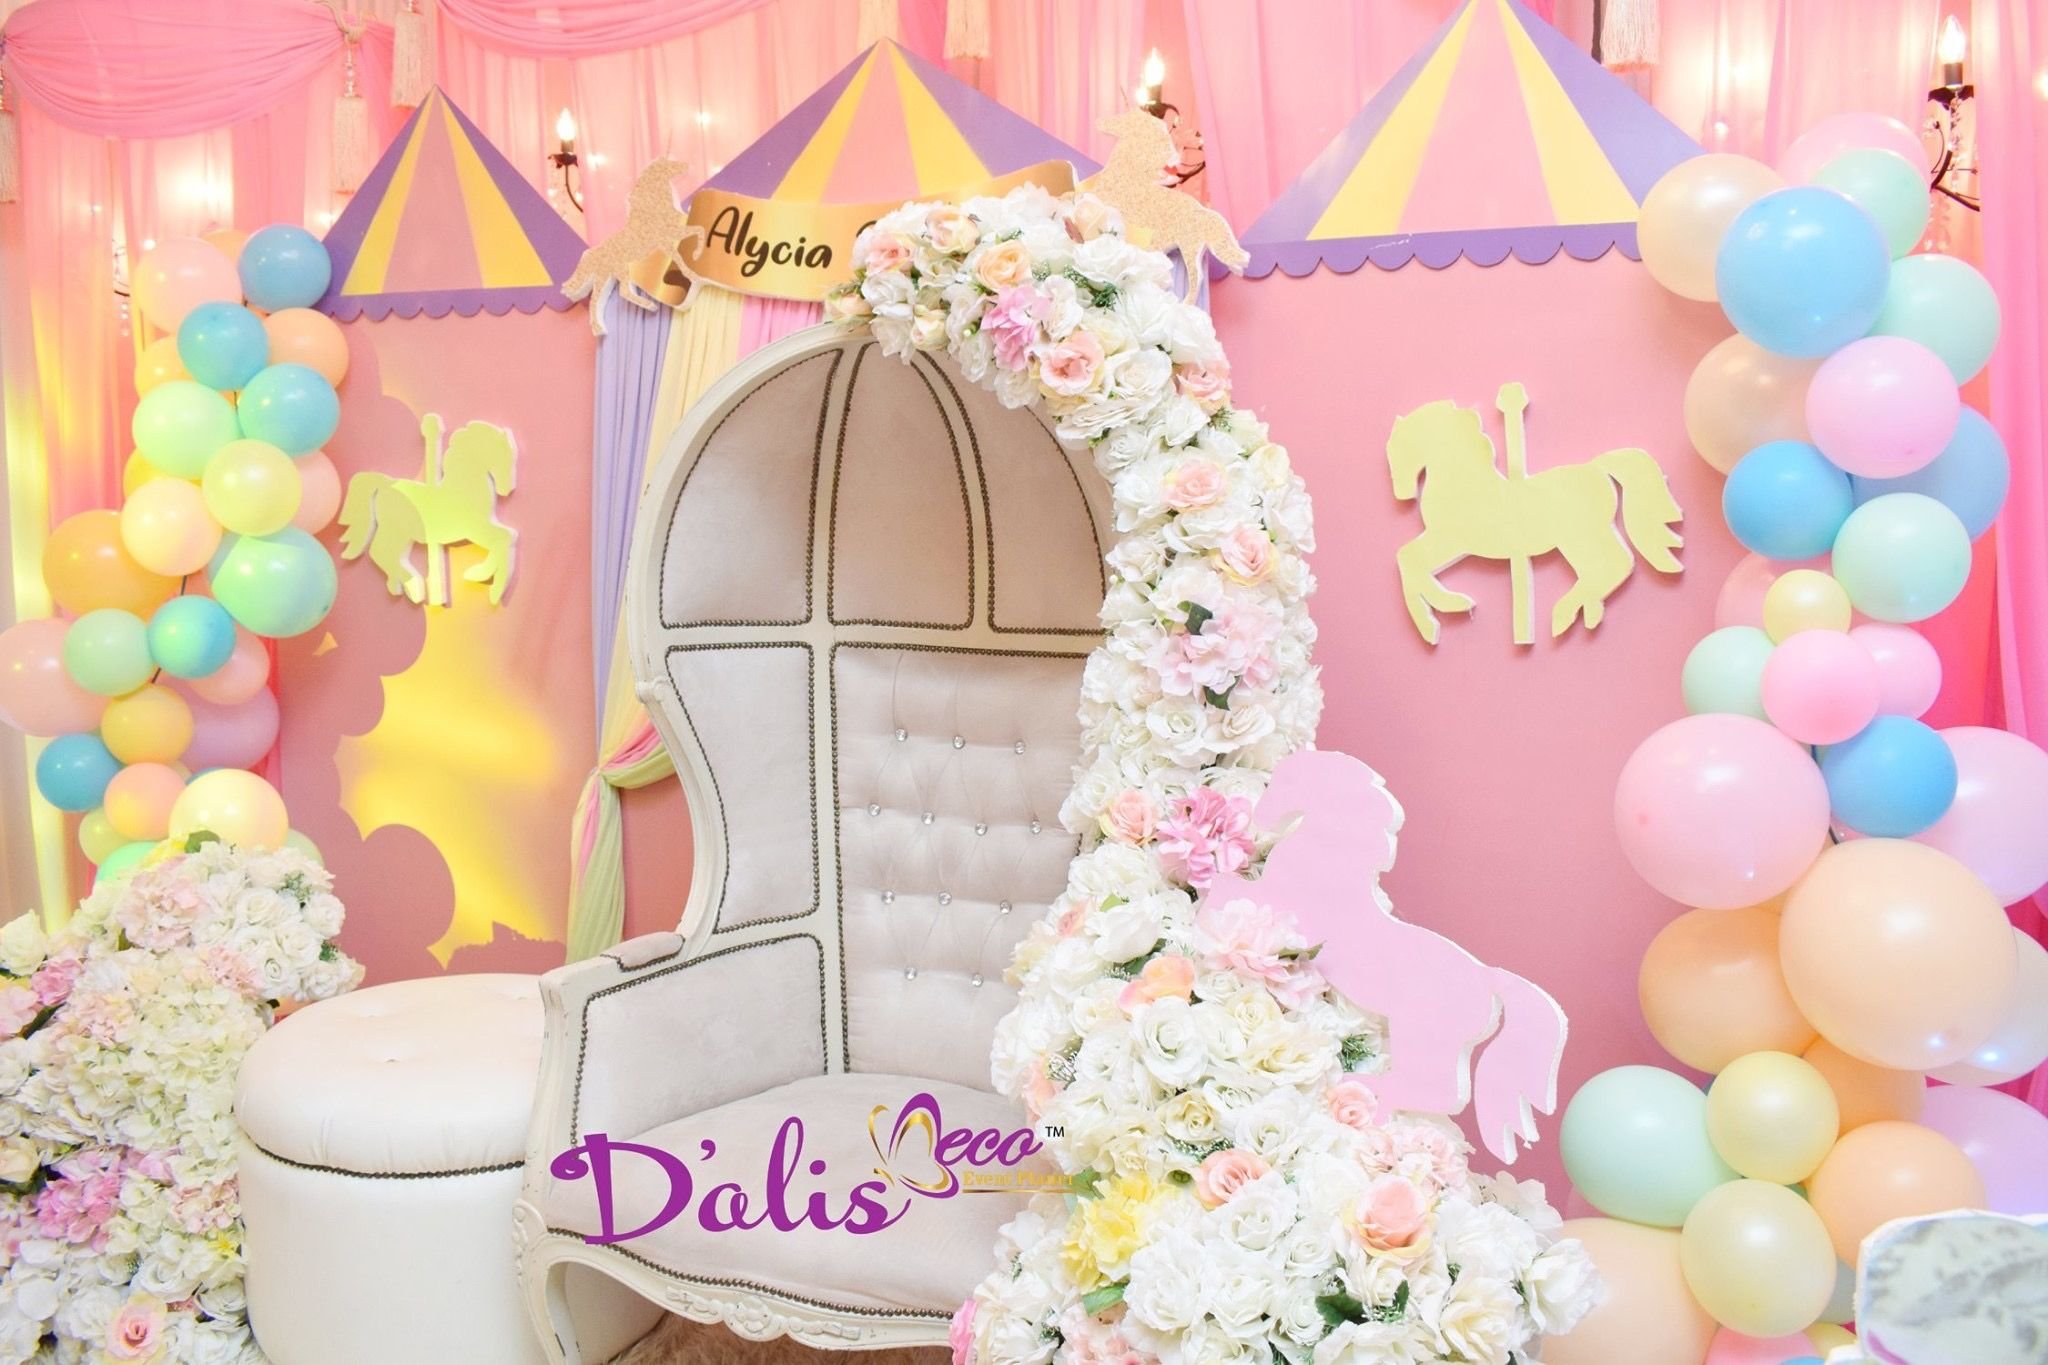 Baby Cradle Murah Wedding Frozen Theme Fb D'alis Deco Weddings Insta